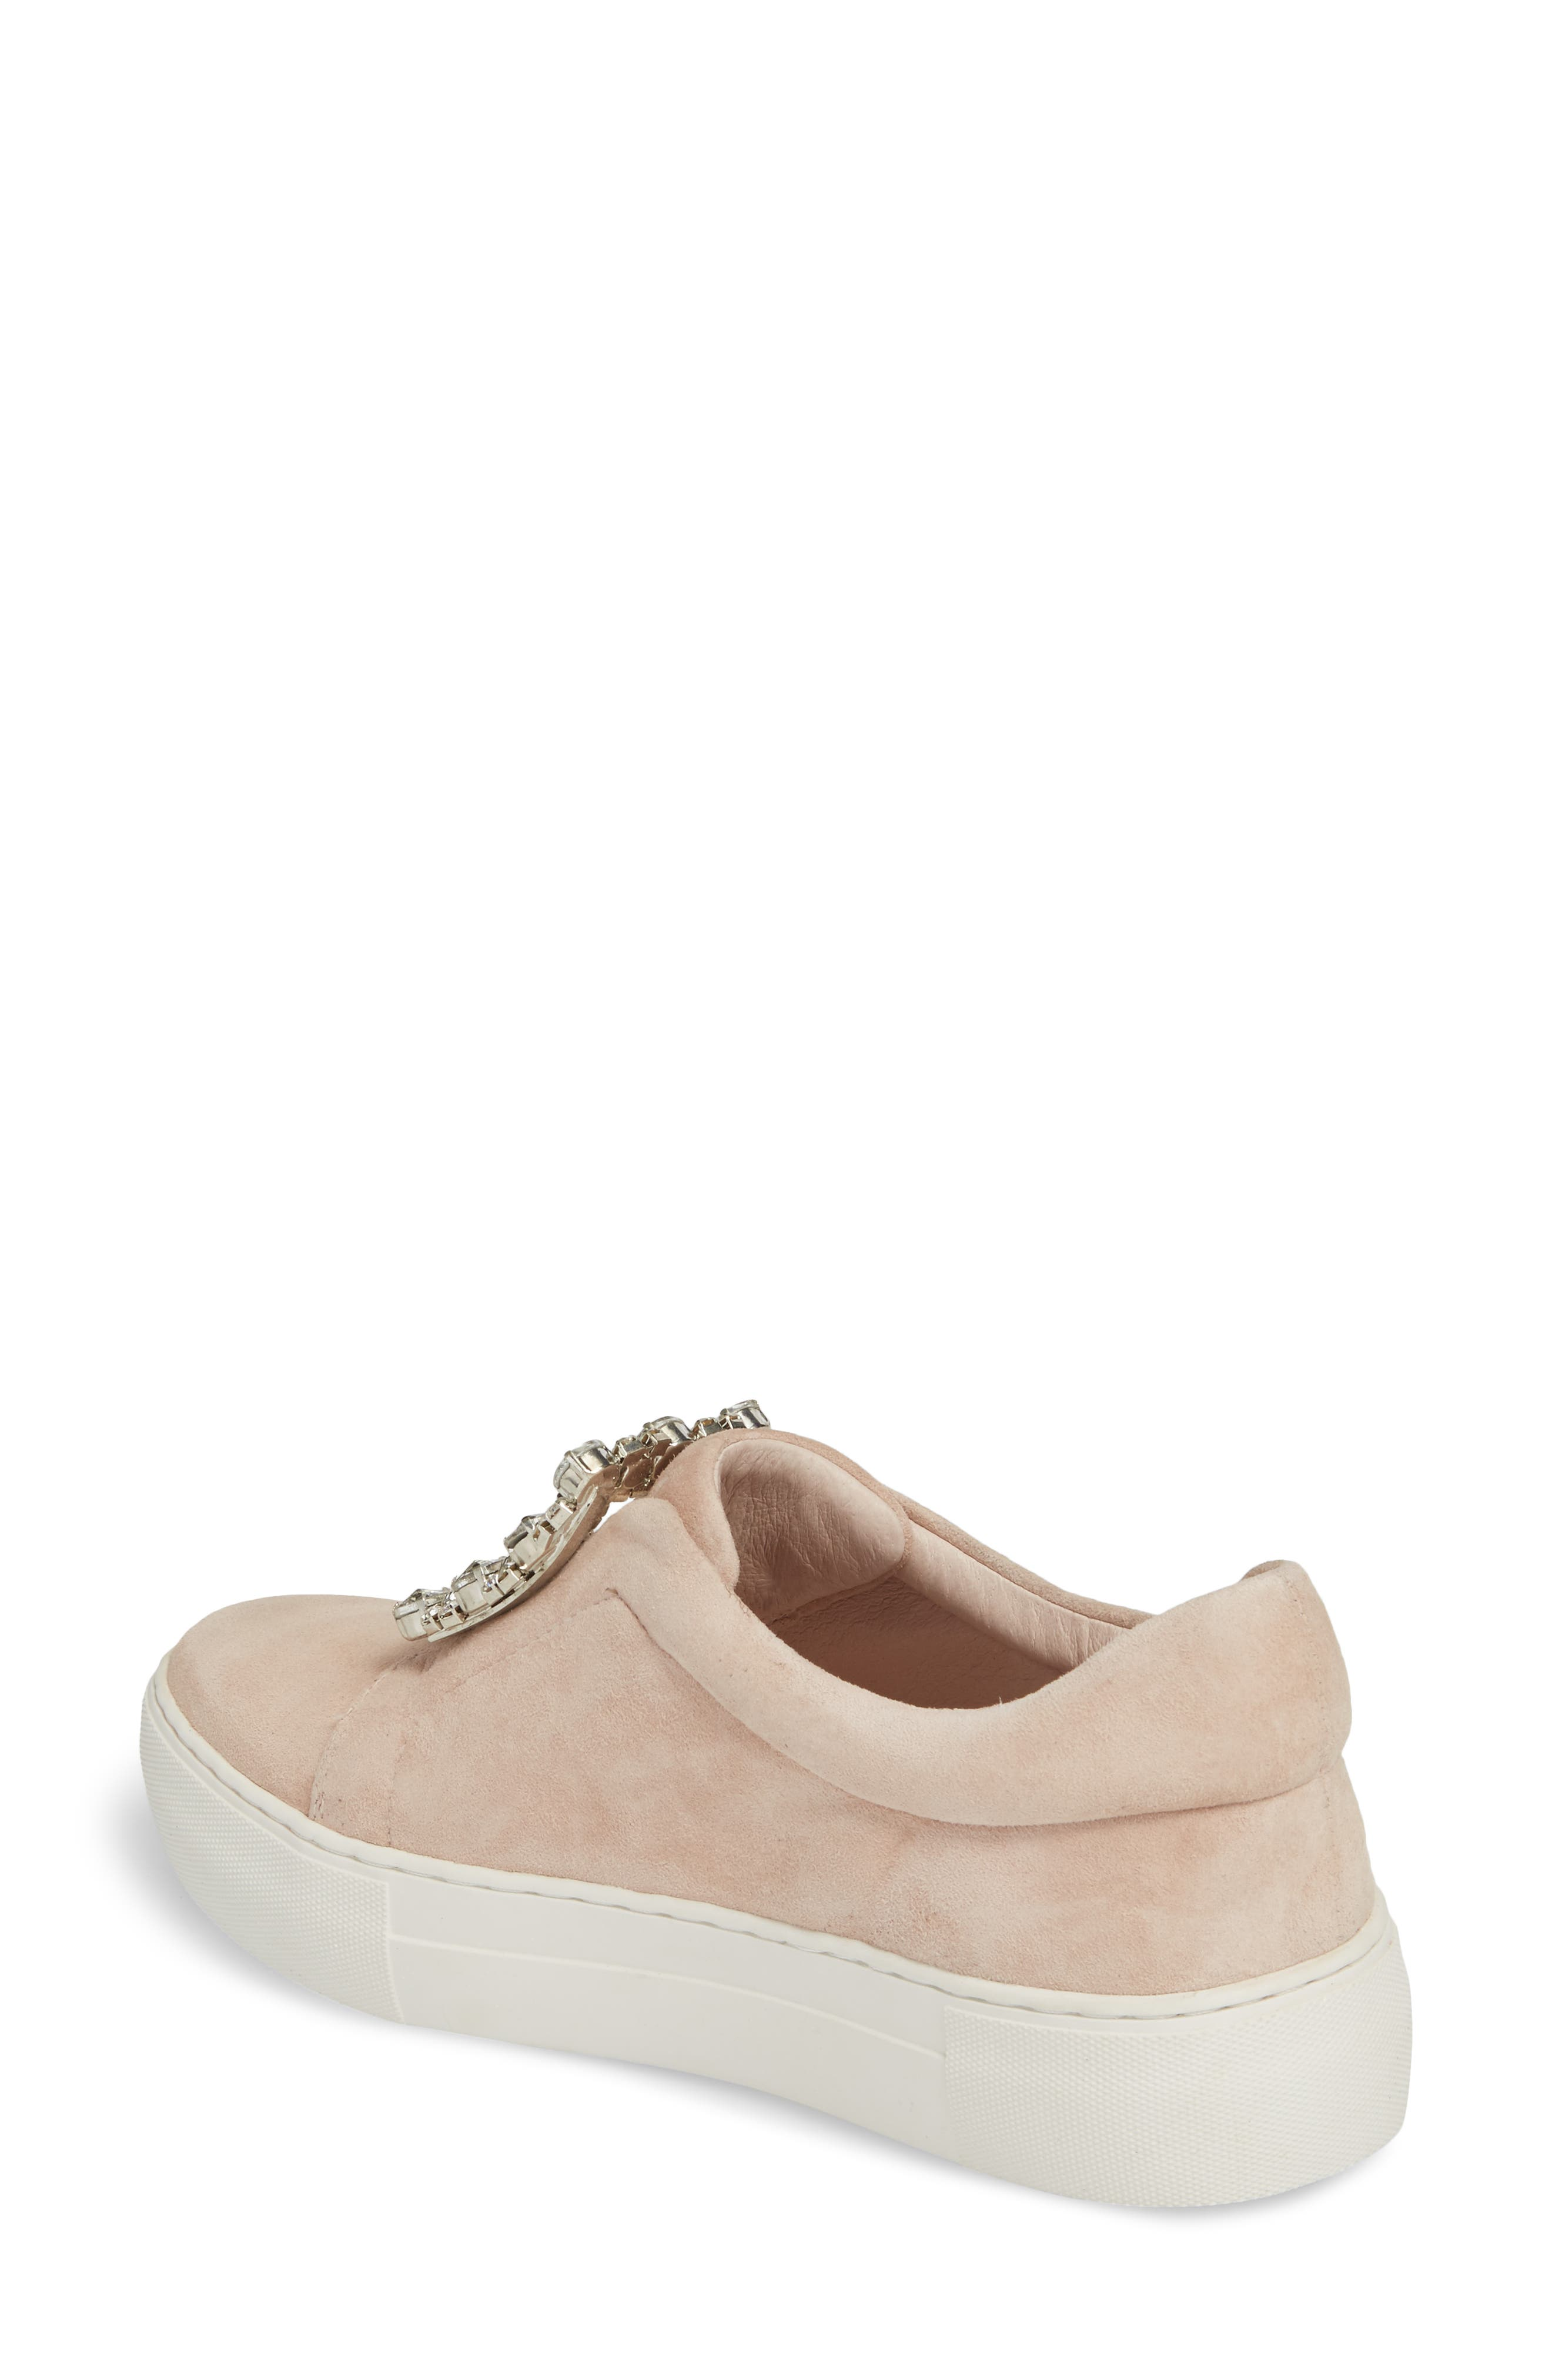 Abode Embellished Buckle Platform Sneaker,                             Alternate thumbnail 2, color,                             Nude Suede